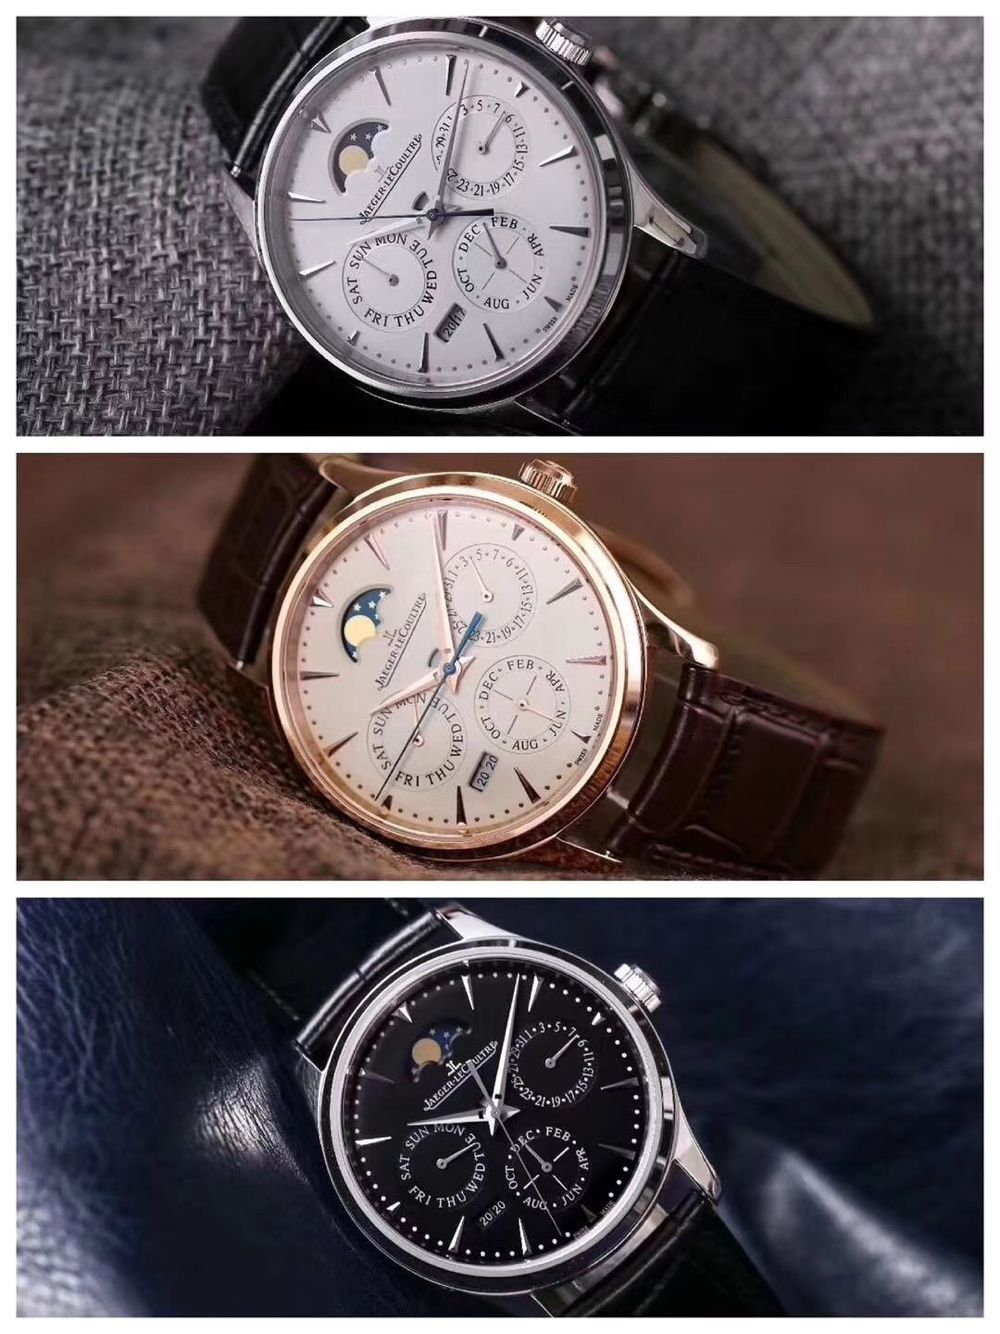 Jaeger Lecoultre Moonphase Chronograph watch